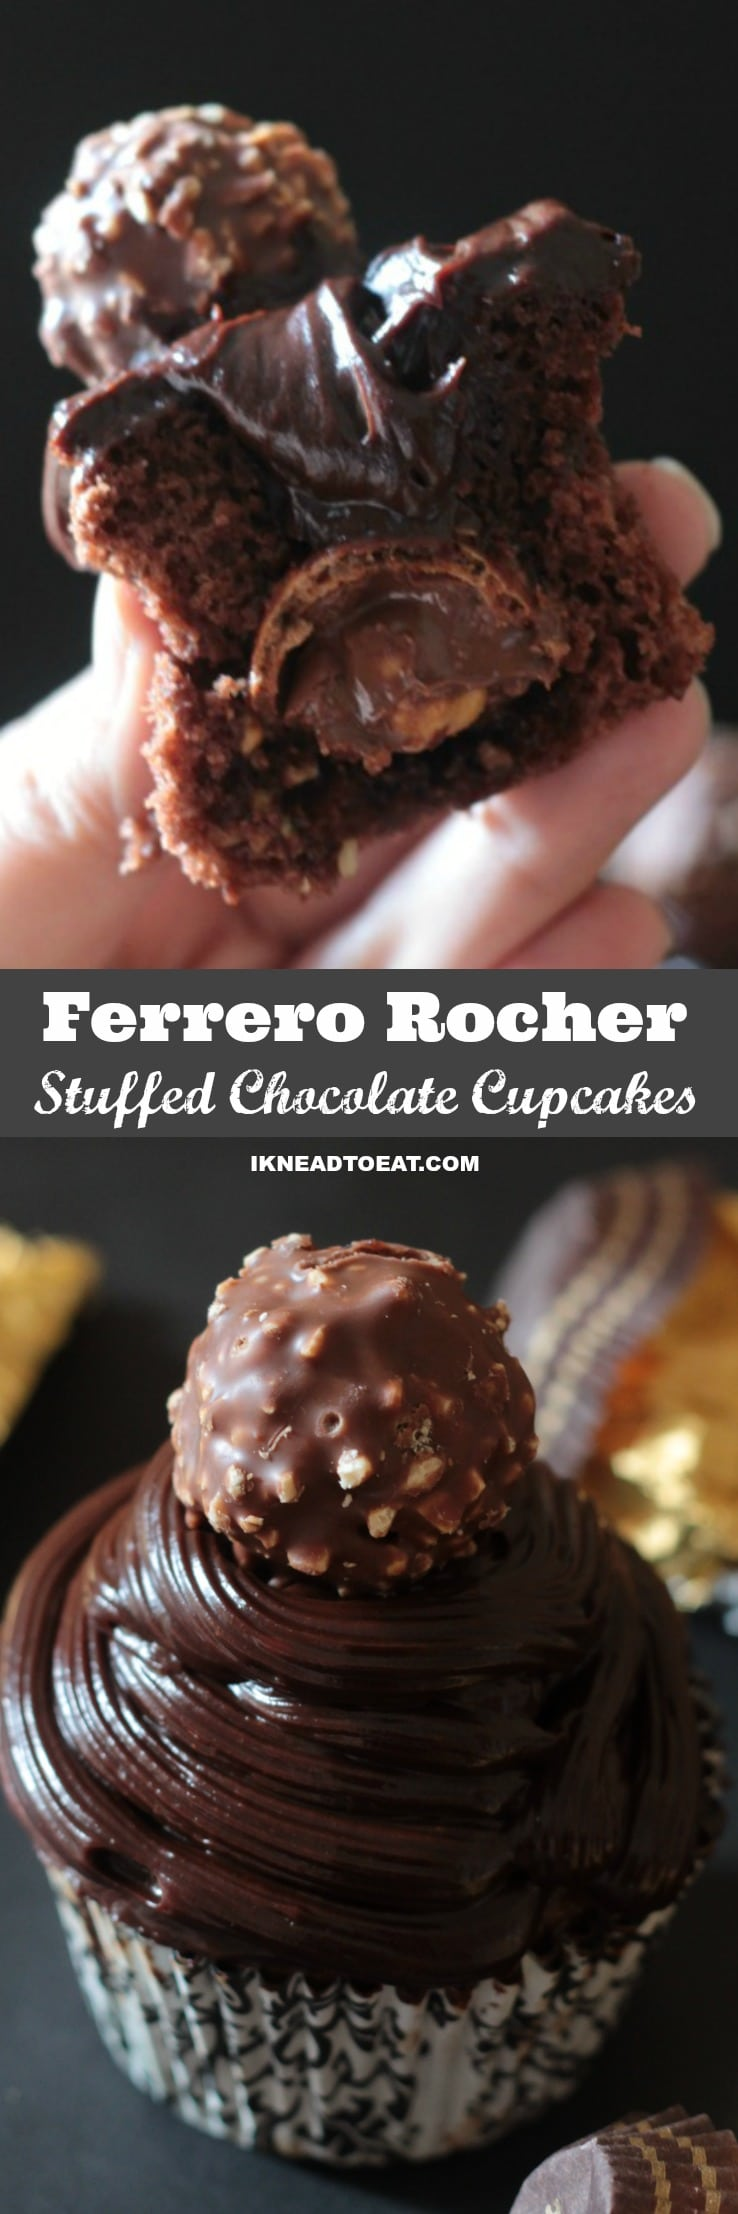 Ferrero Rocher Stuffed Chocolate Cupcakes